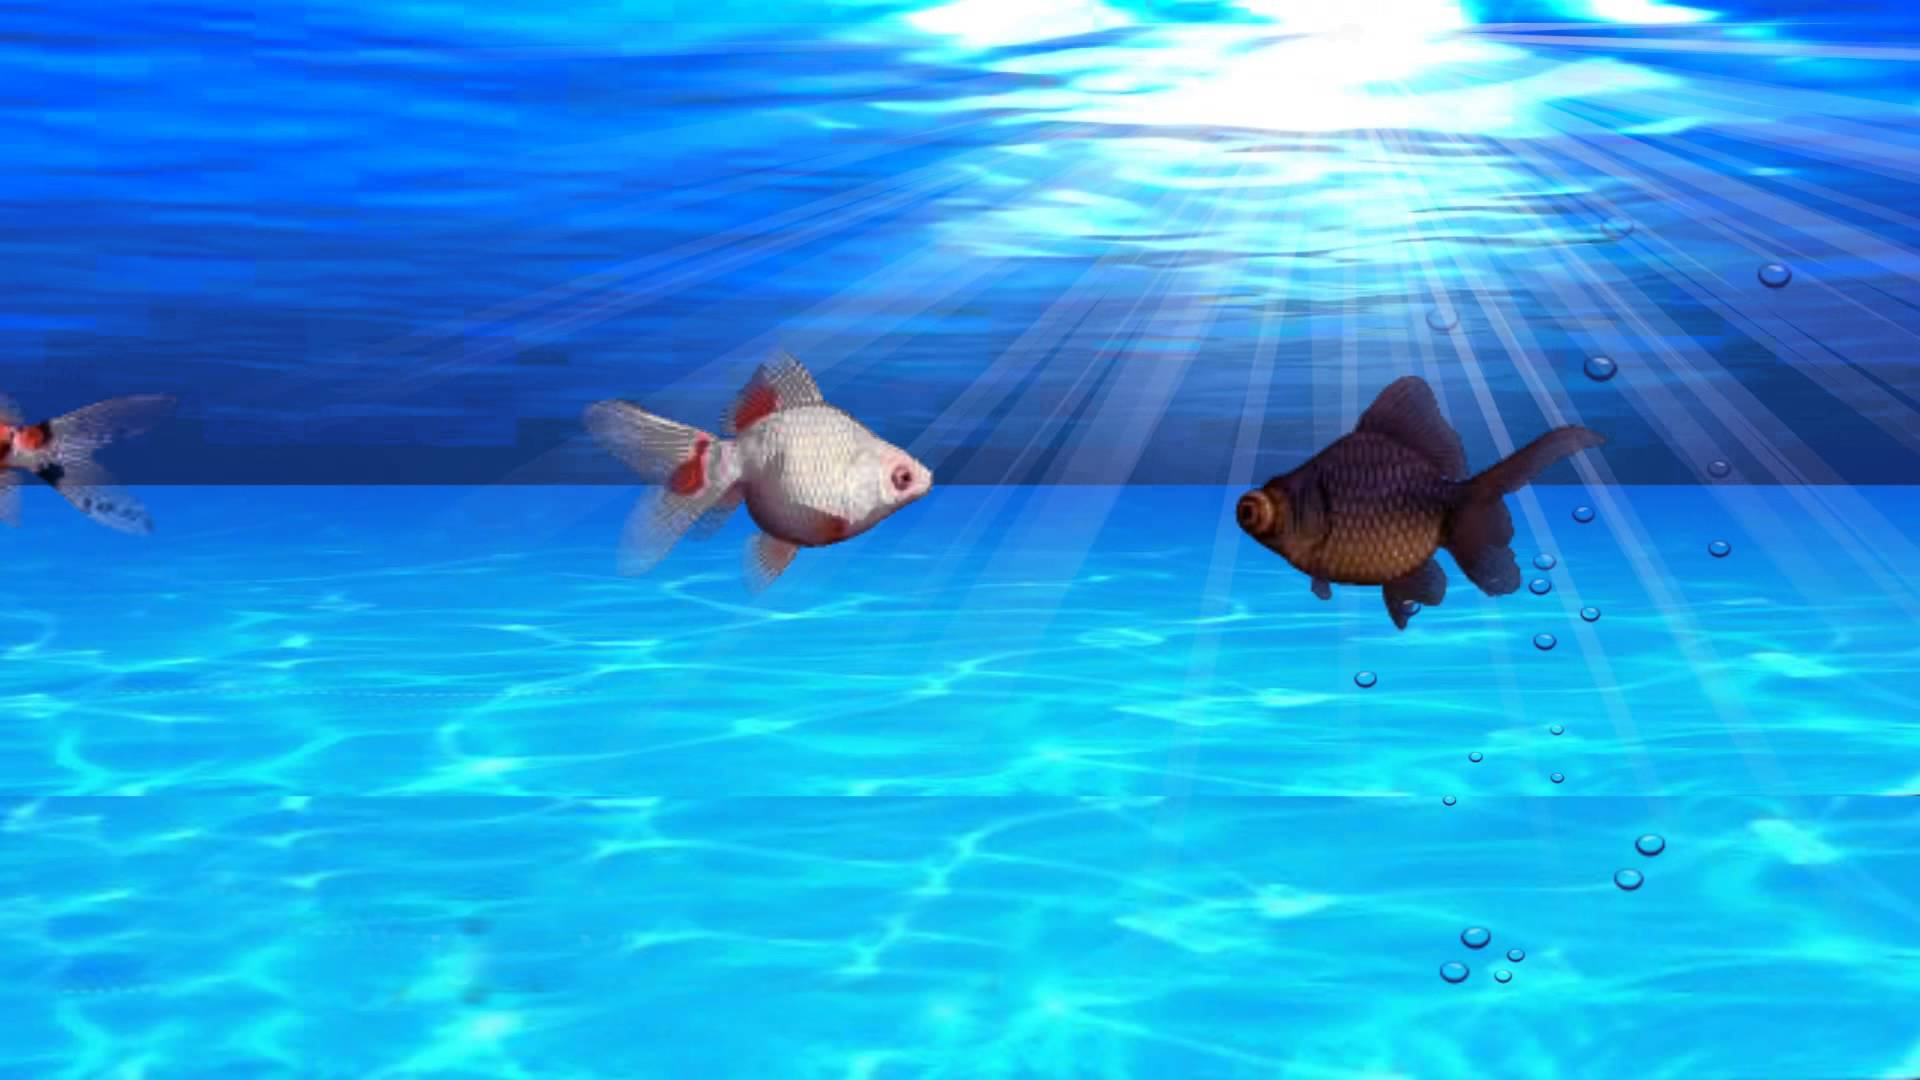 Fish Aquarium Video Background - YouTube